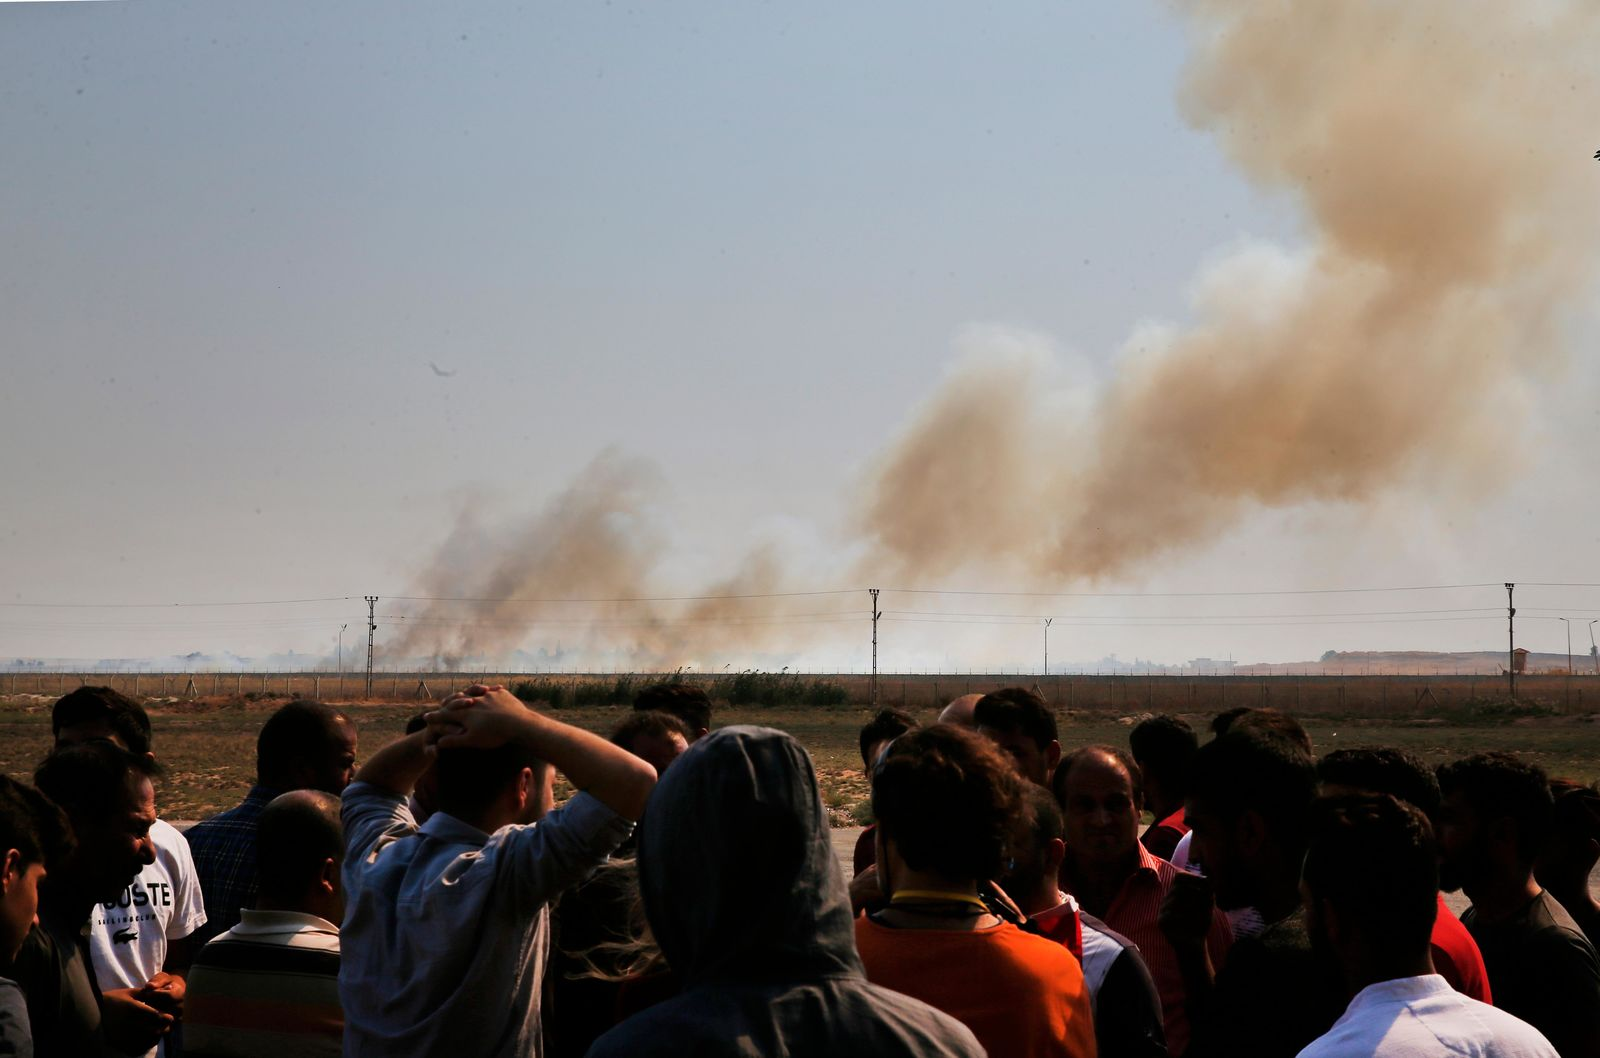 People watch from Akcakale, Sanliurfa province, southeastern Turkey, as smoke billows from fires on targets in Tel Abyad, Syria, caused by bombardment by Turkish forces, Sunday, Oct. 13, 2019. (AP Photo/Lefteris Pitarakis)